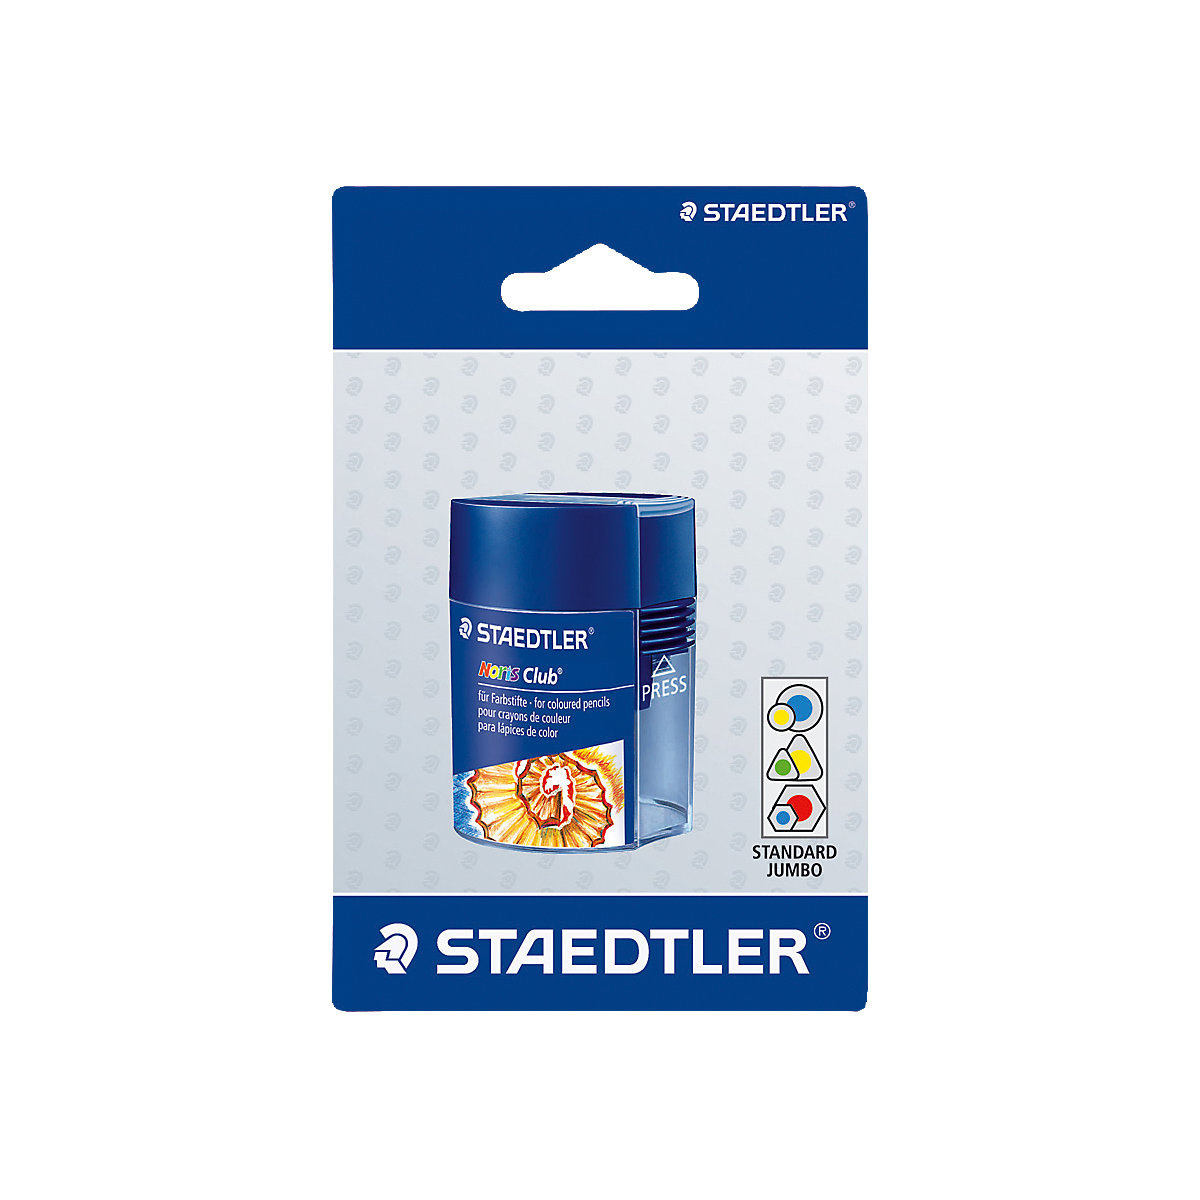 STAEDTLER Pencil Sharpeners 6918891 stationery office school supplies writing goods Office round circle MTpromo